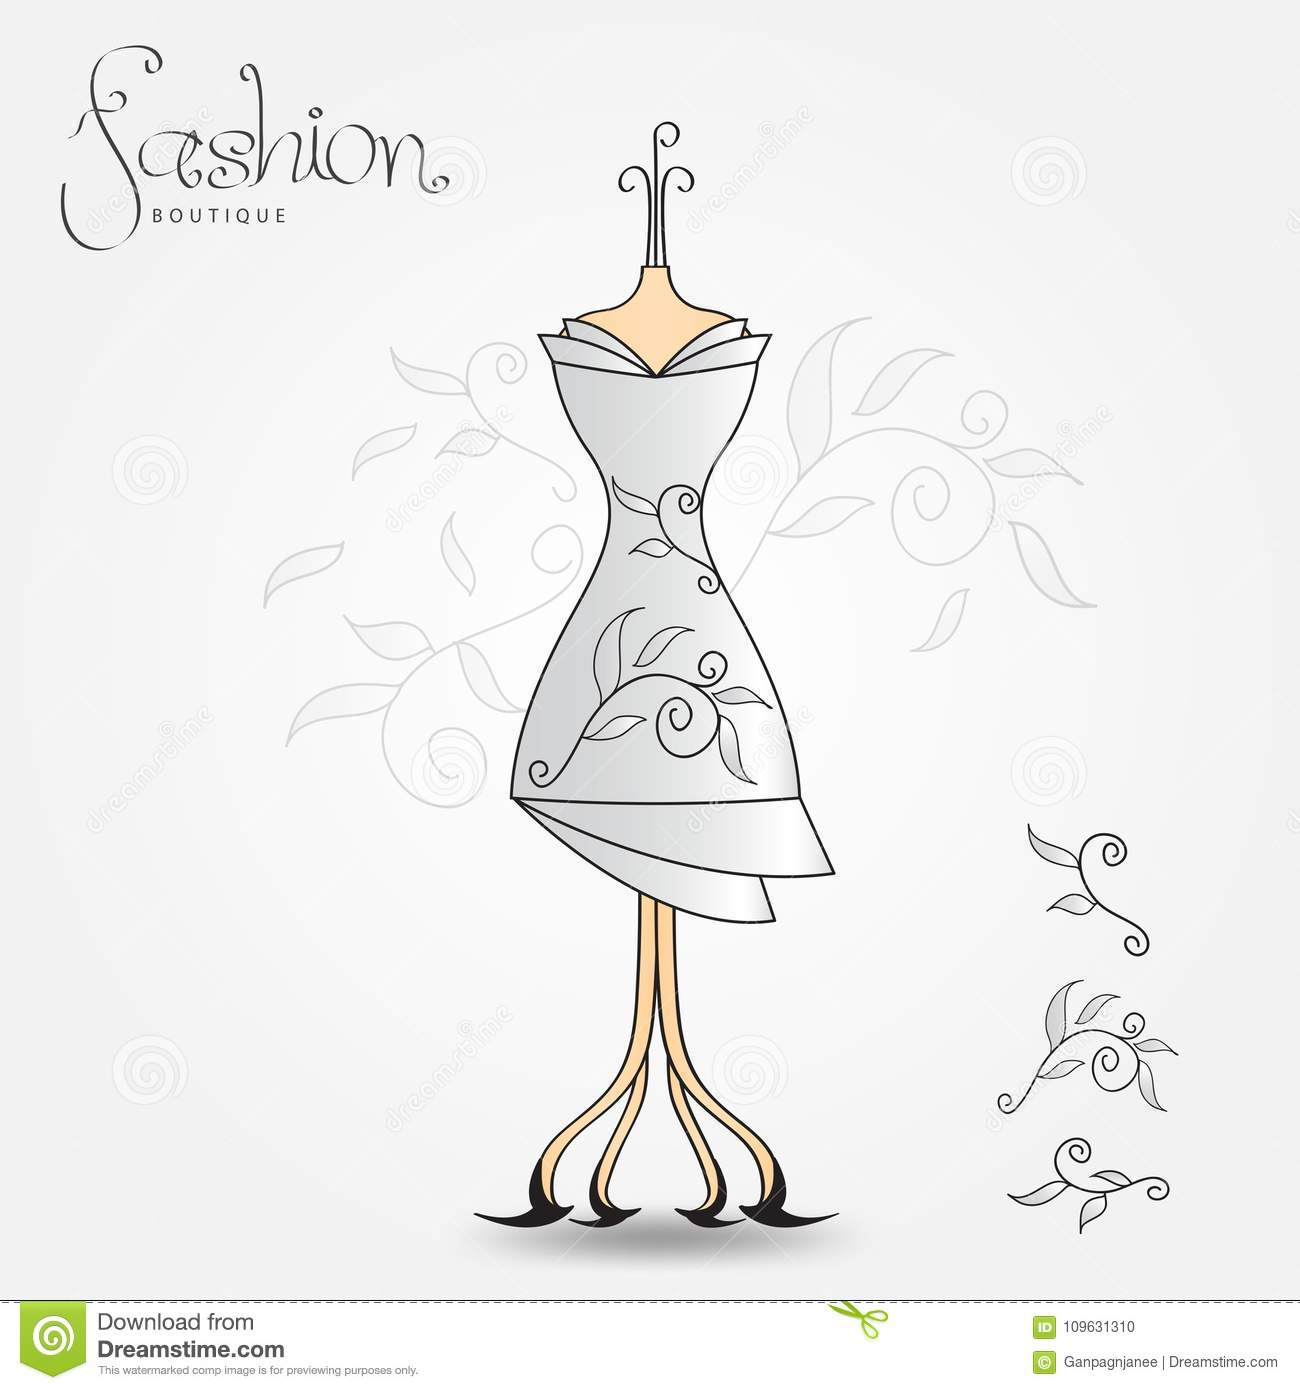 Fashion boutique, Evening dress, vintage icon vector illustration. Fabric pattern for clothes